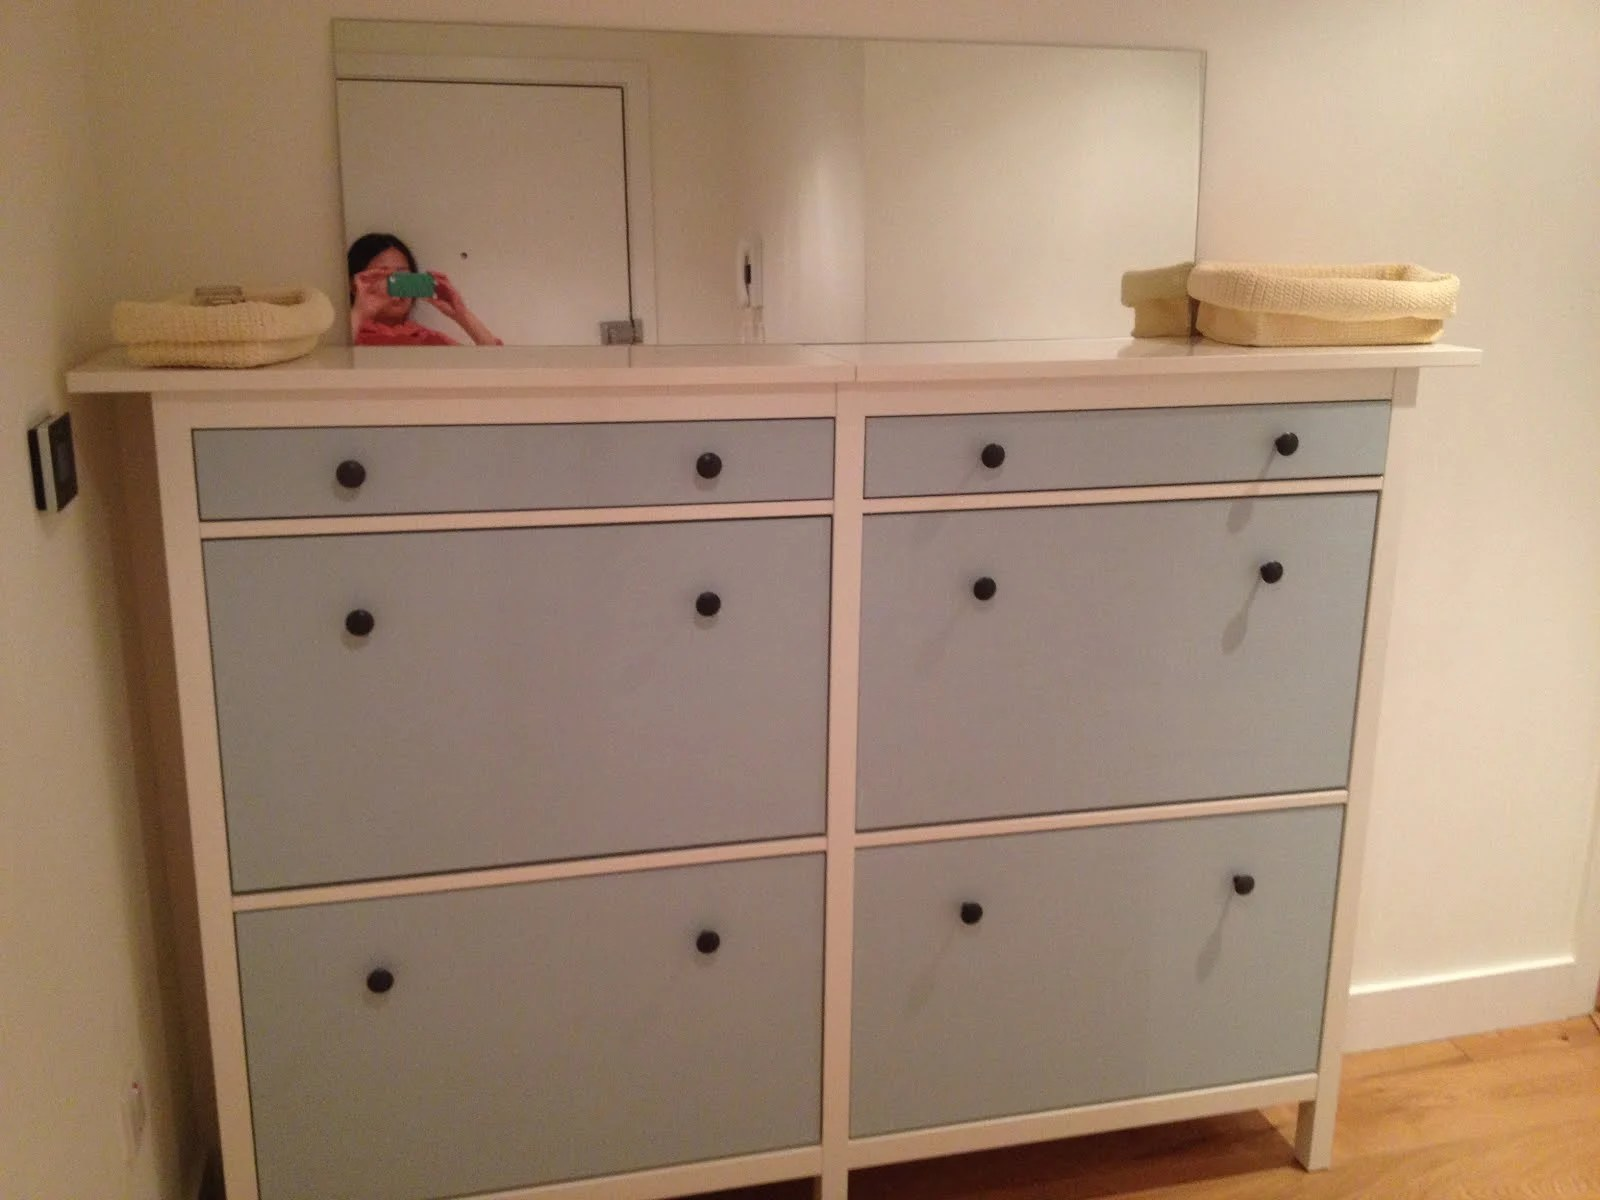 Ikea Hacks Hemnes Wedded Hemnes Shoe Cabinets Twined And Painted Ikea Hackers